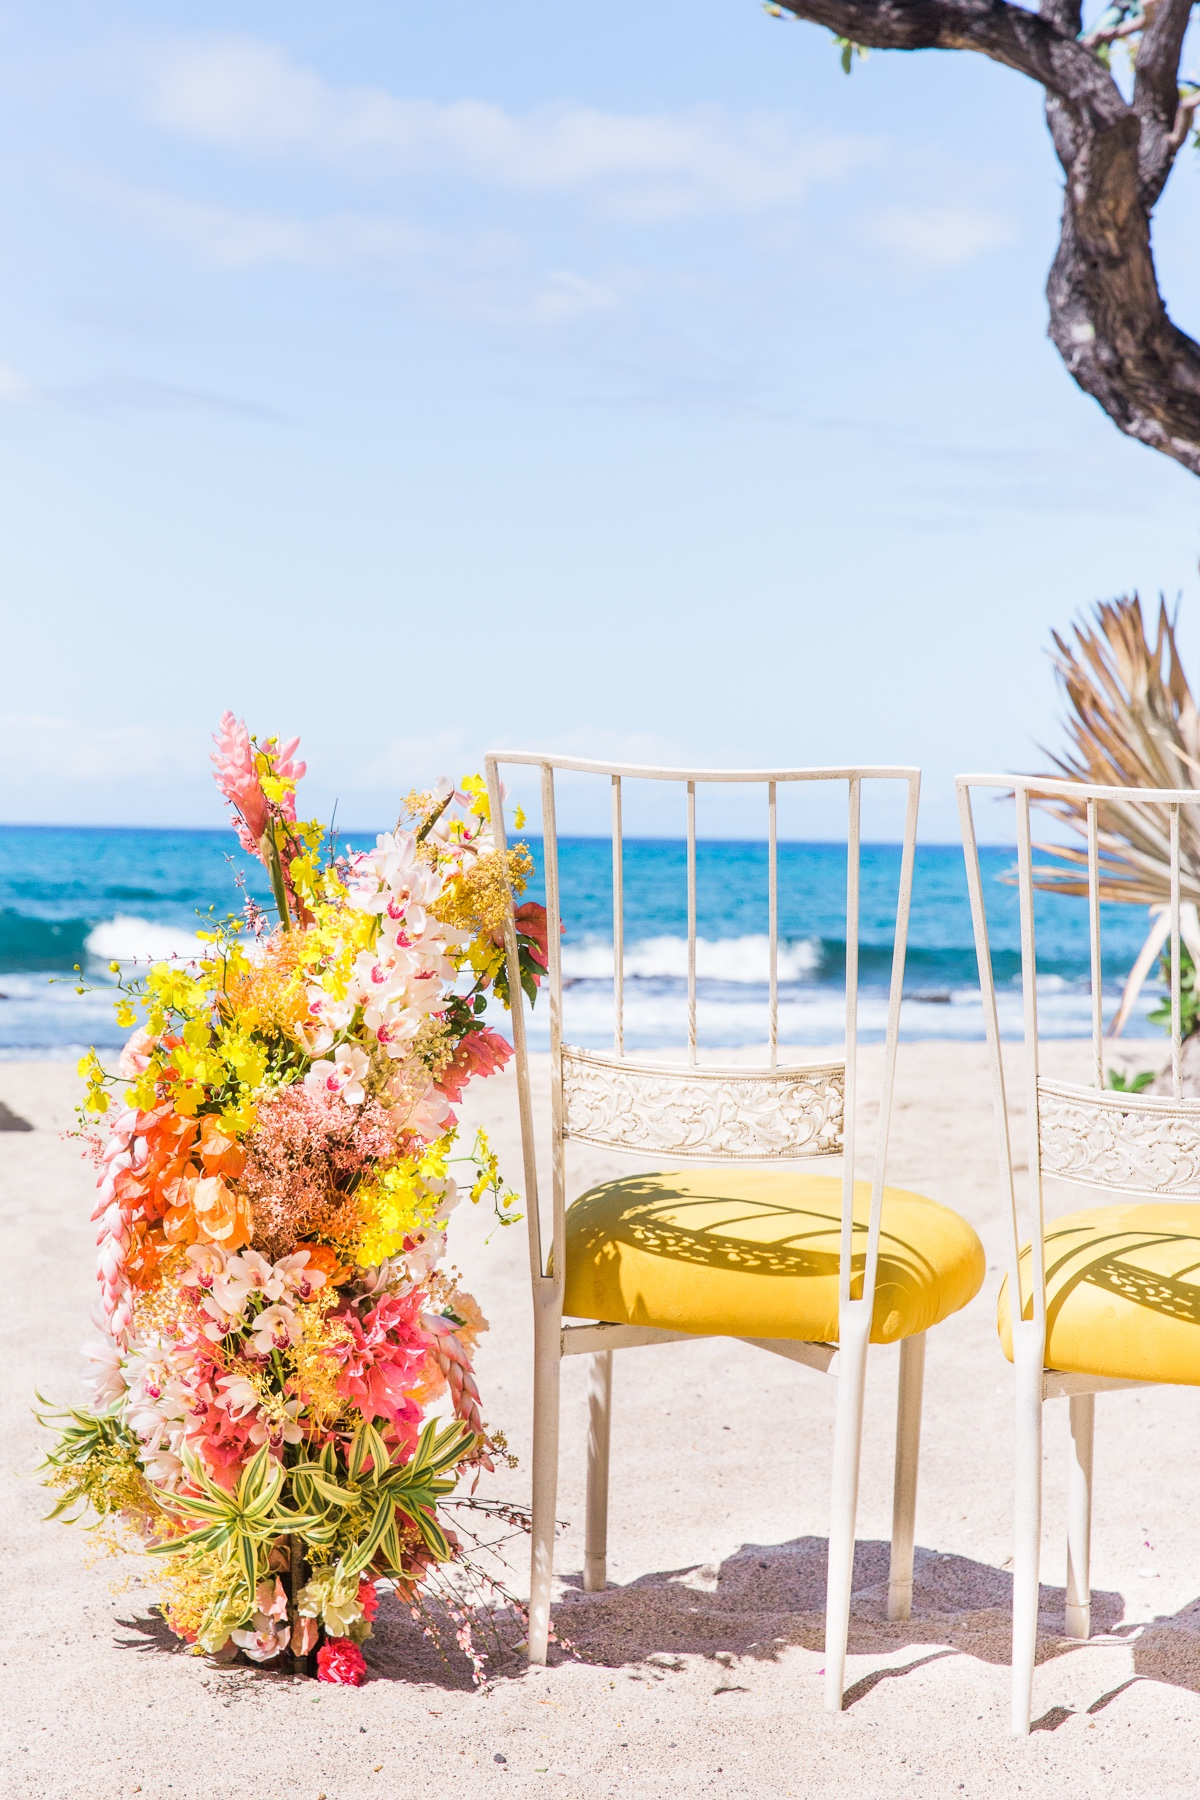 Aisle decor ideas for a beach wedding ceremony at Four Seasons Resort, Hualalai